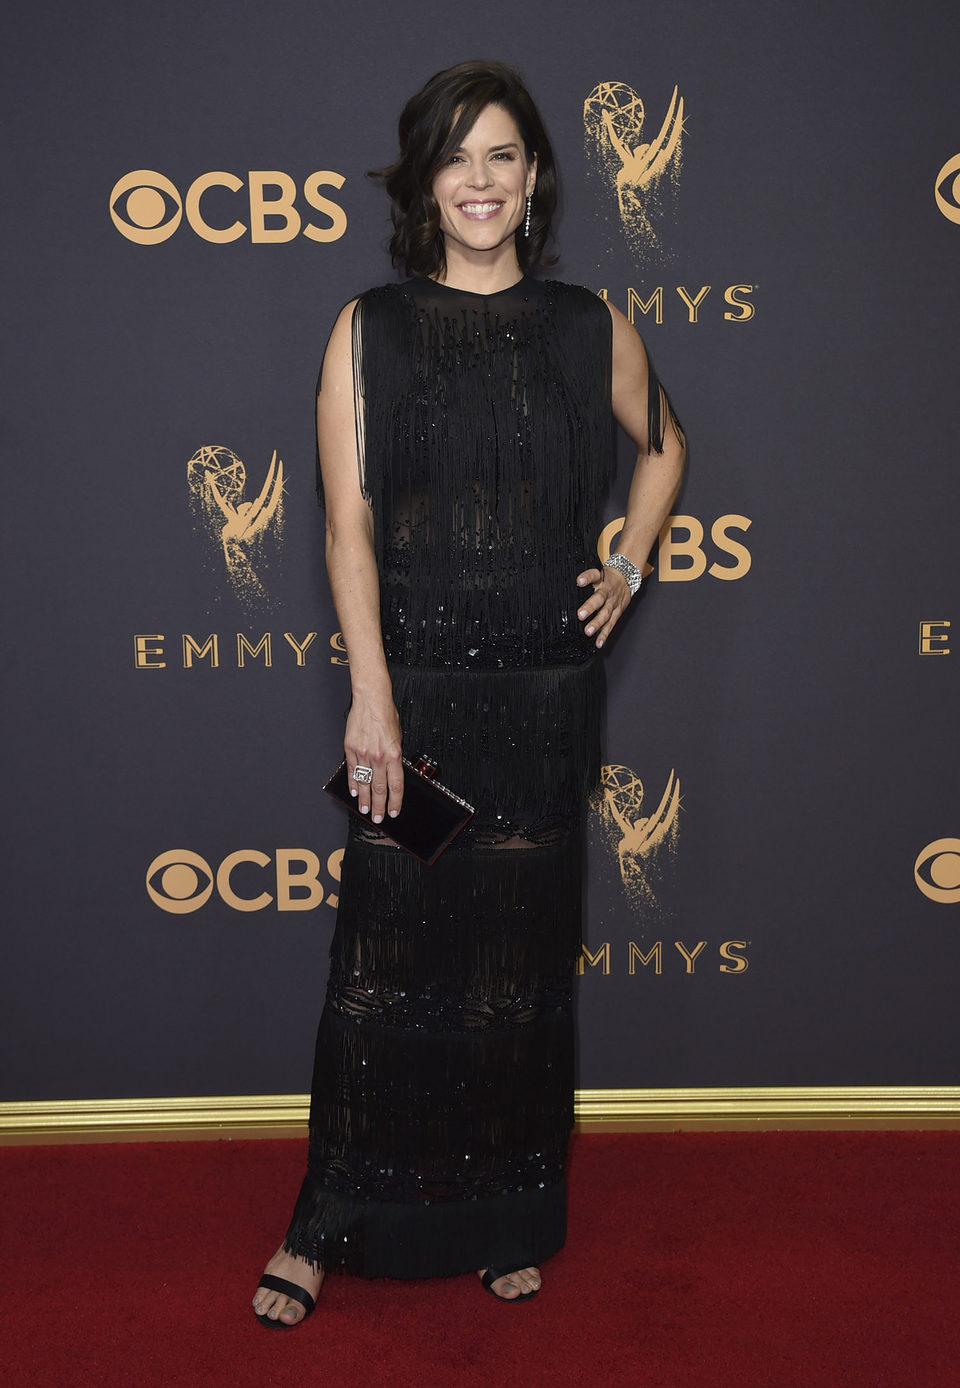 Neve Campbell at the Emmys 2017 red carpet